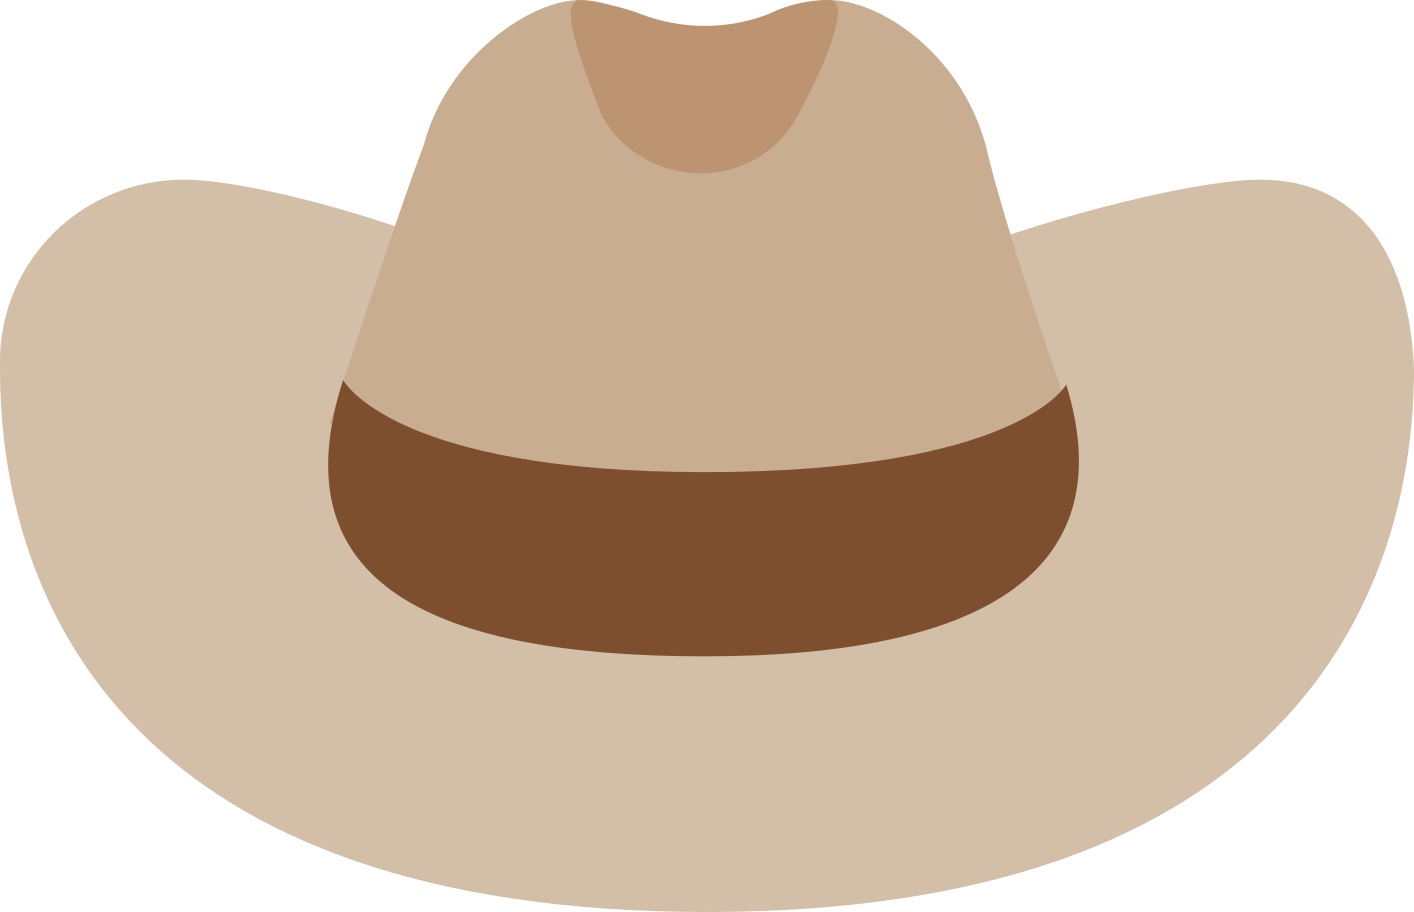 style cowboy hat images in PNG and SVG | Icons8 Illustrations